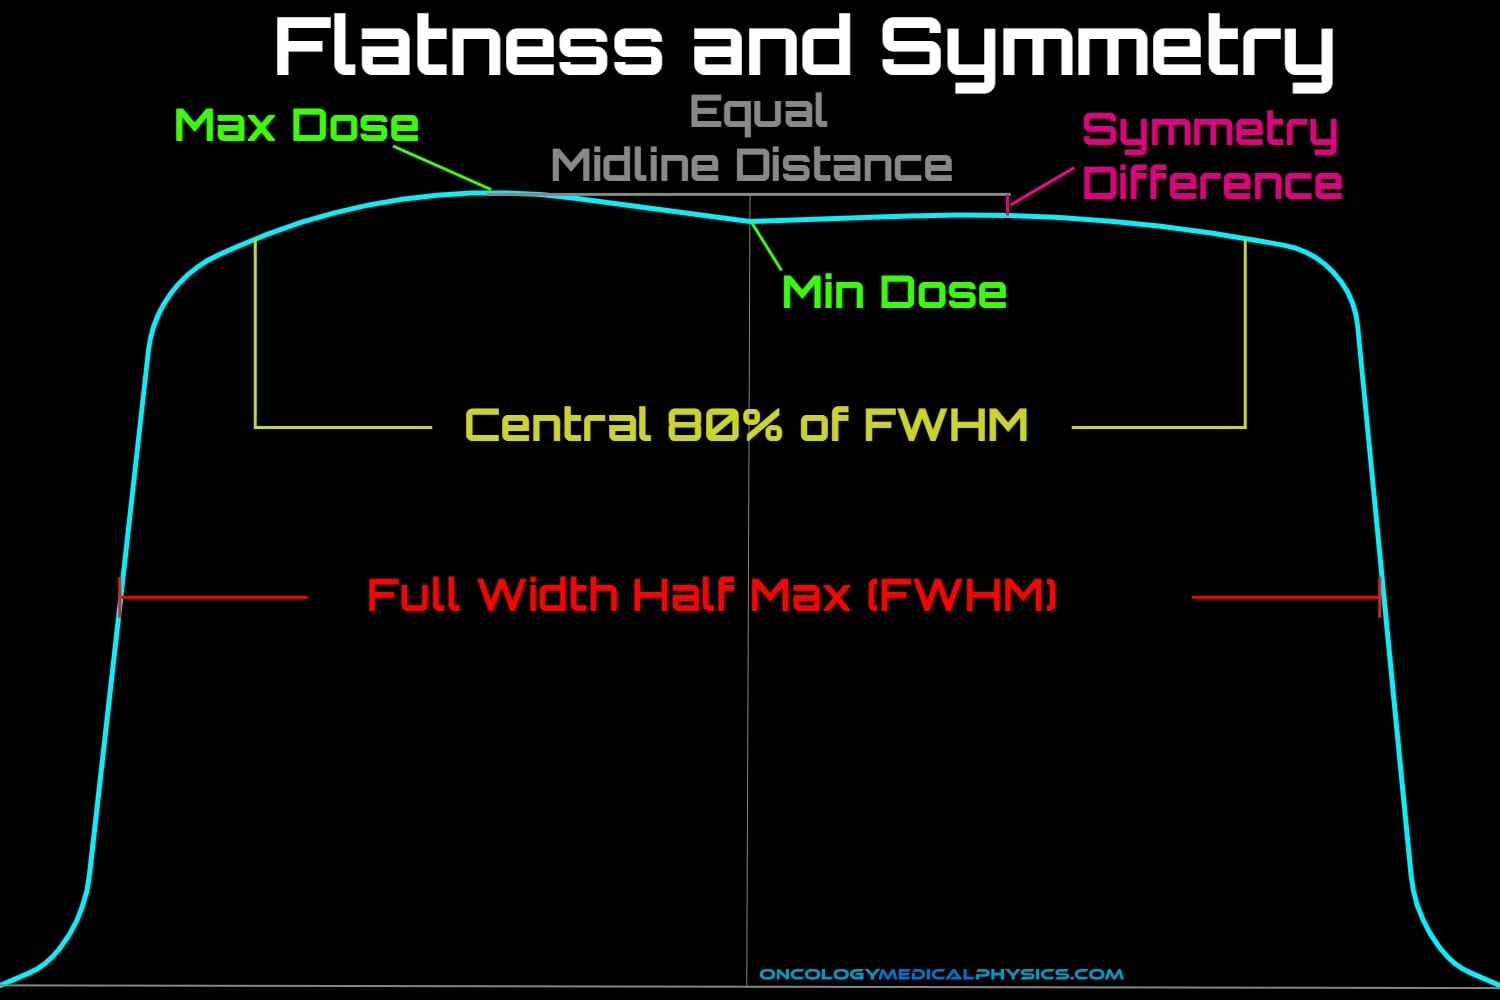 AAPM TG-45 definitions of flatness and symmetry for radiation therapy beams